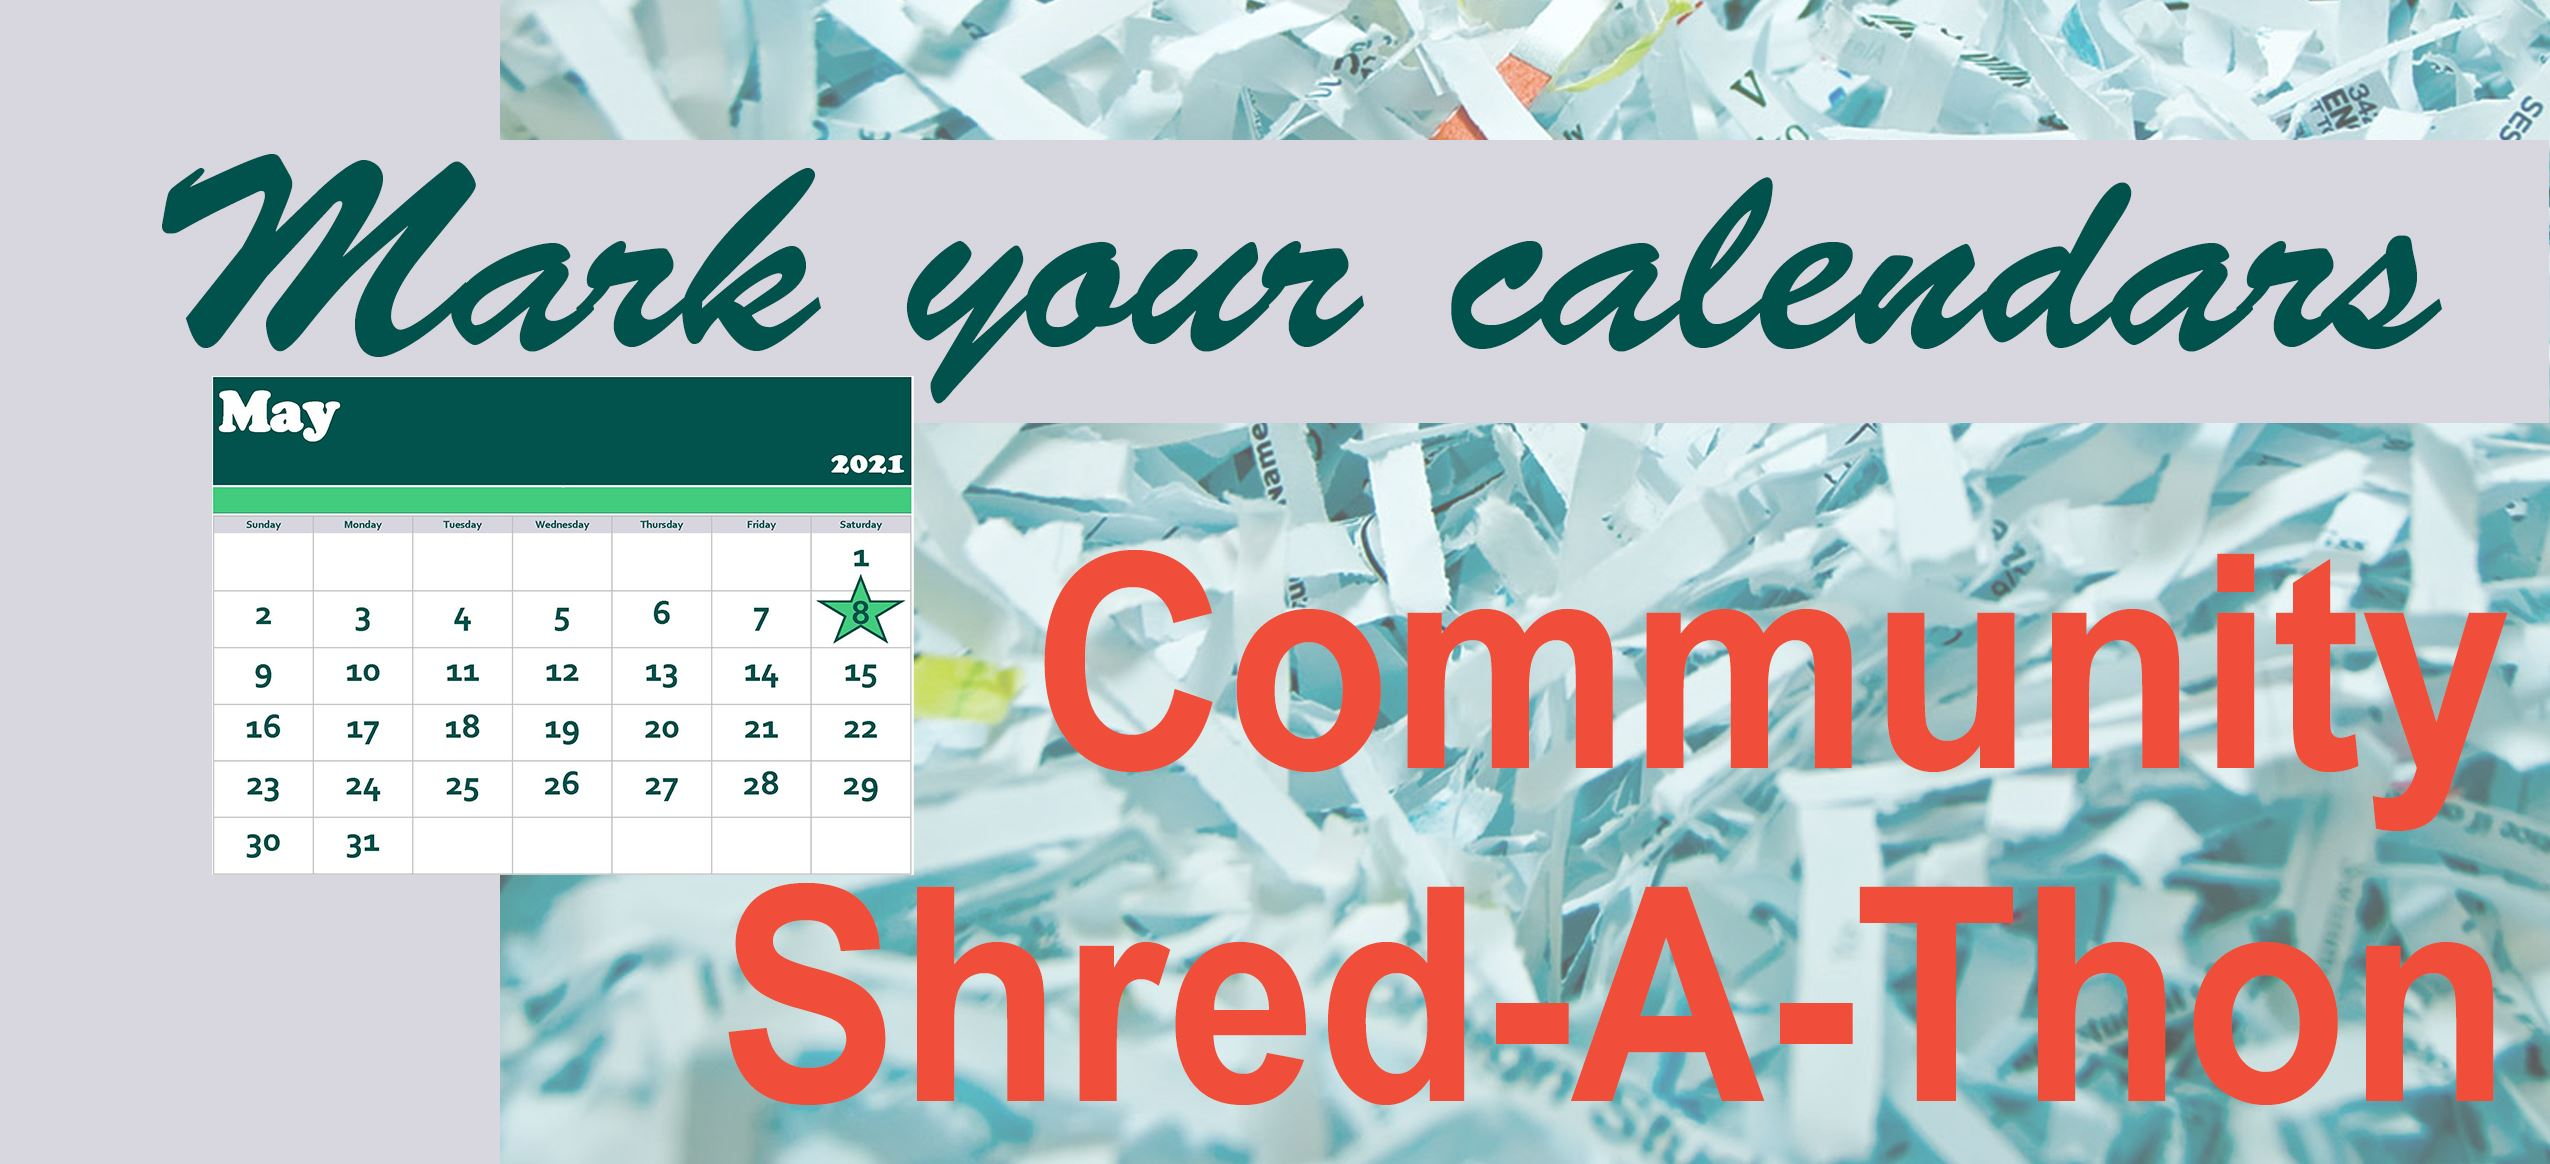 Shred-A-Thon May 8, 10 a.m.-Noon, Marysville City Hall, 1049 State Ave.